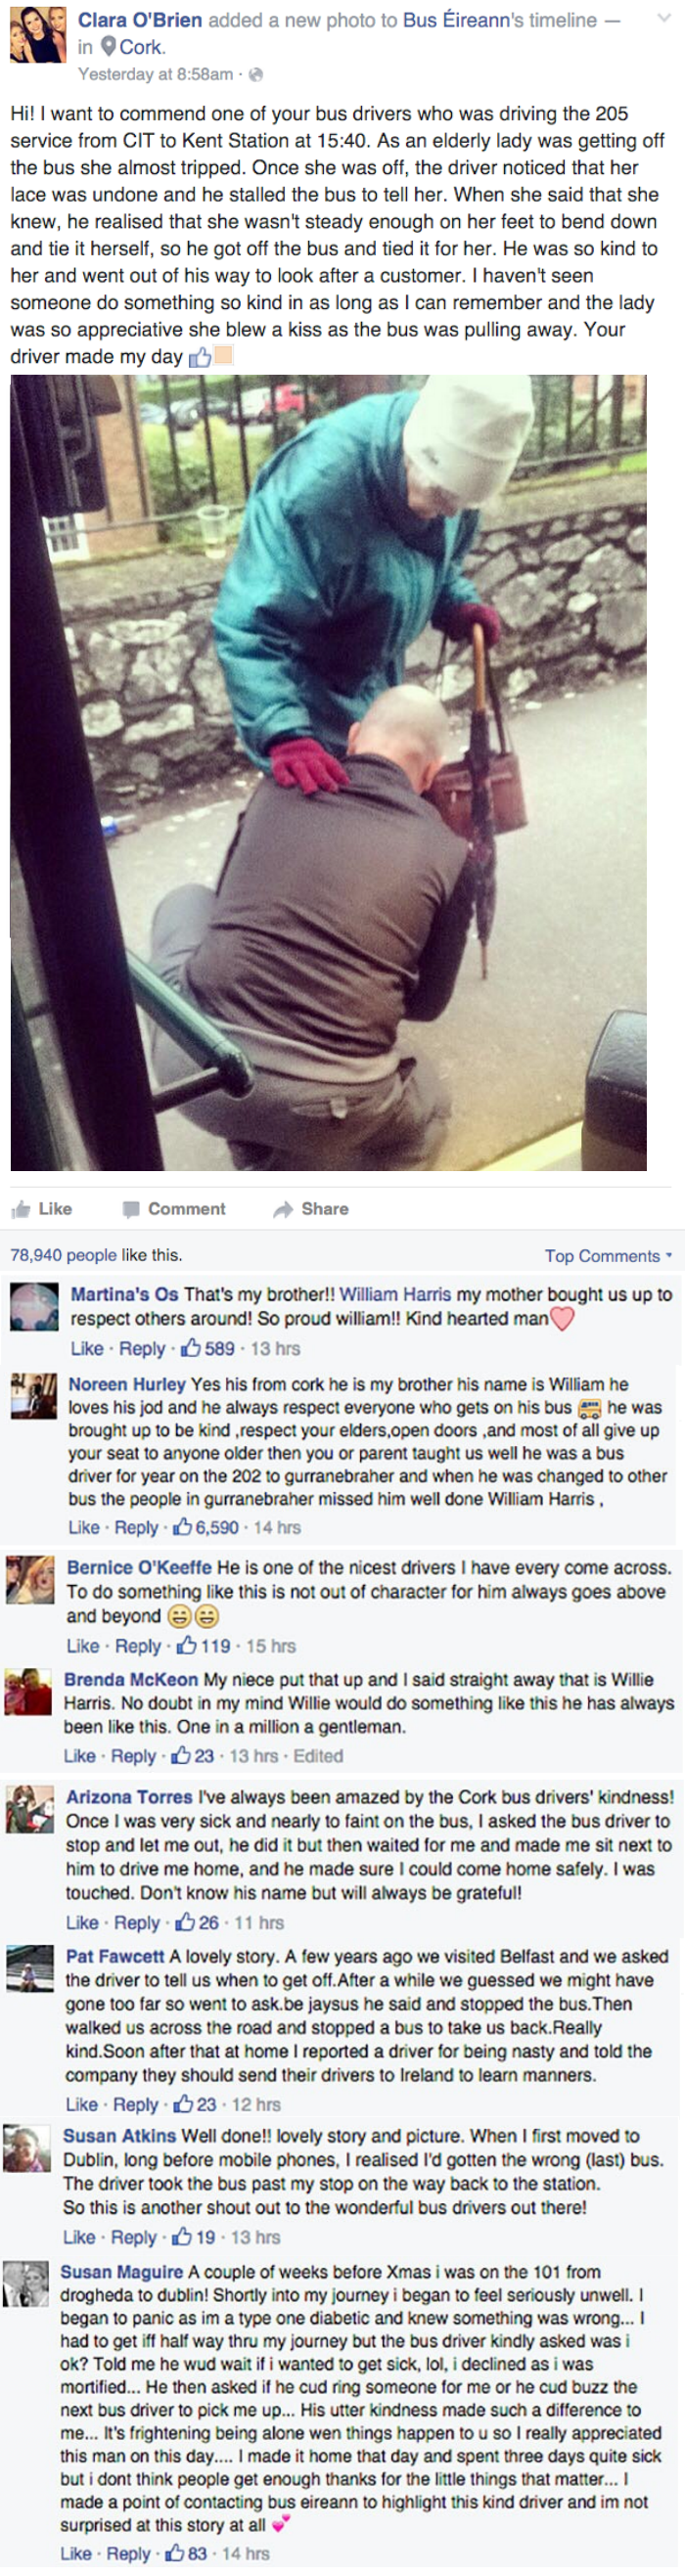 heartwarming facebook image bus driver in Cork Ireland tied old woman's shoes for her